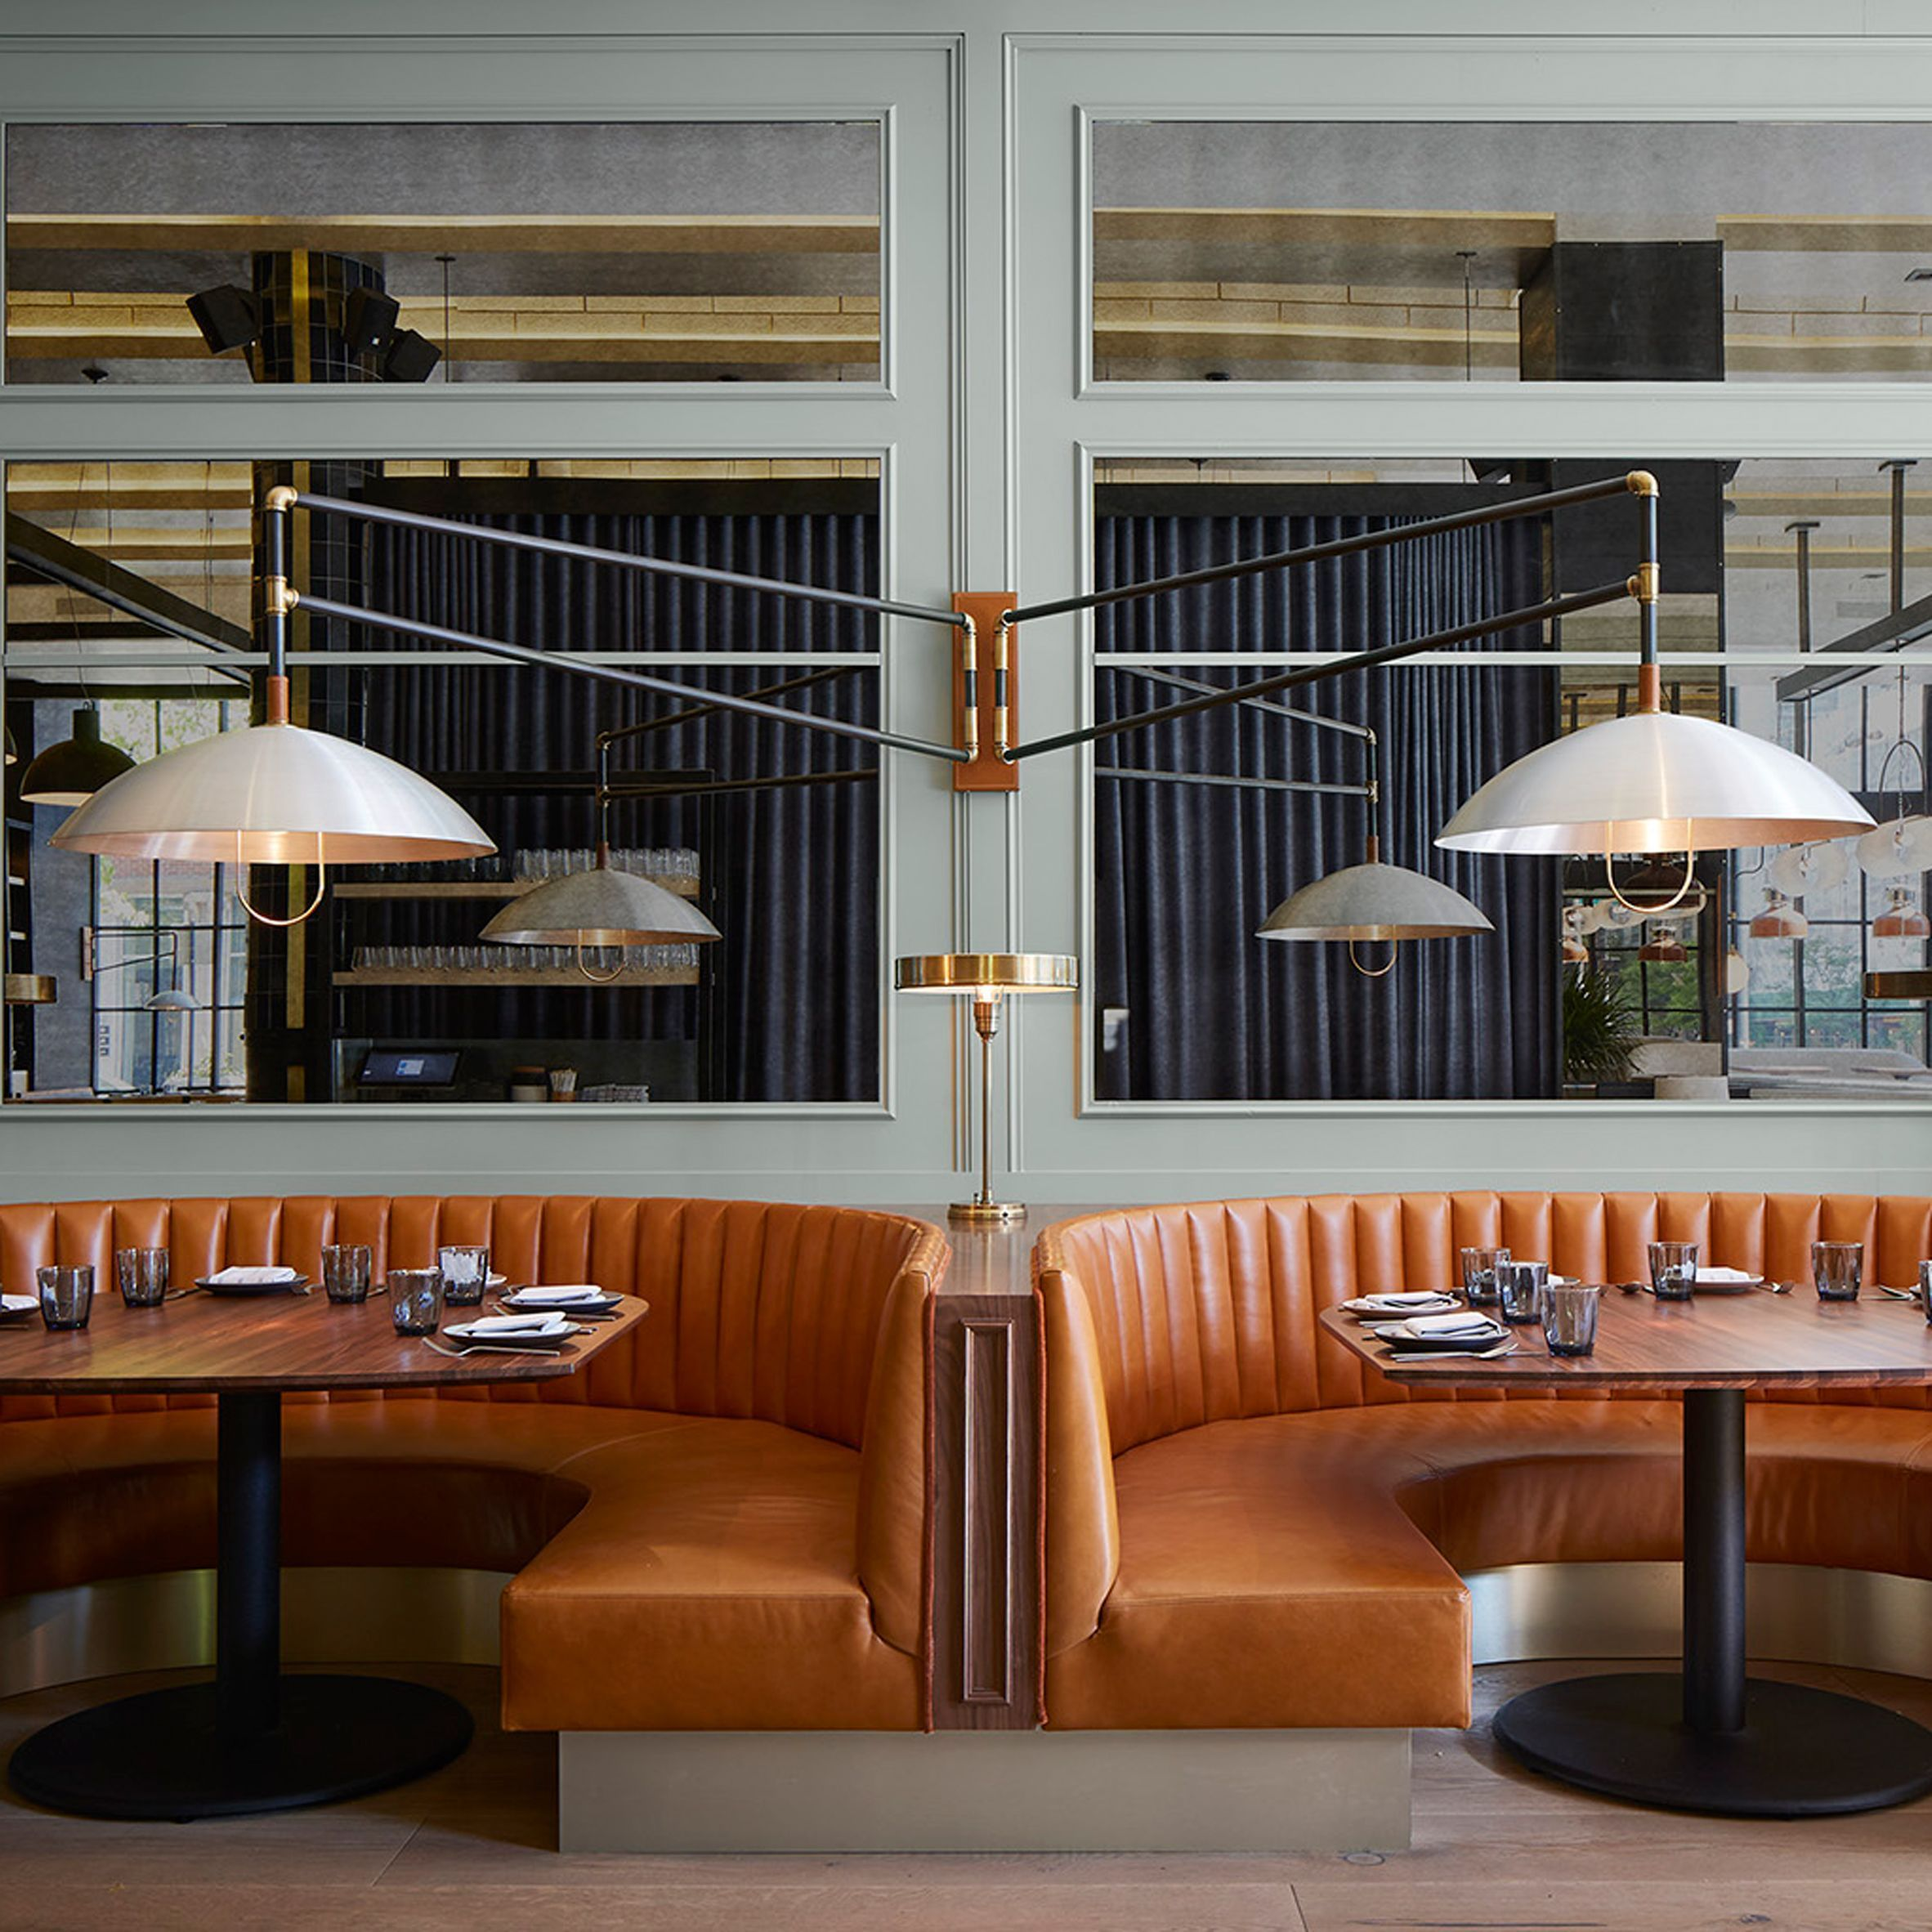 Mid Century Style Lamps Swivel Above Burnt Orange Leather Booths Inside This Restaurant In